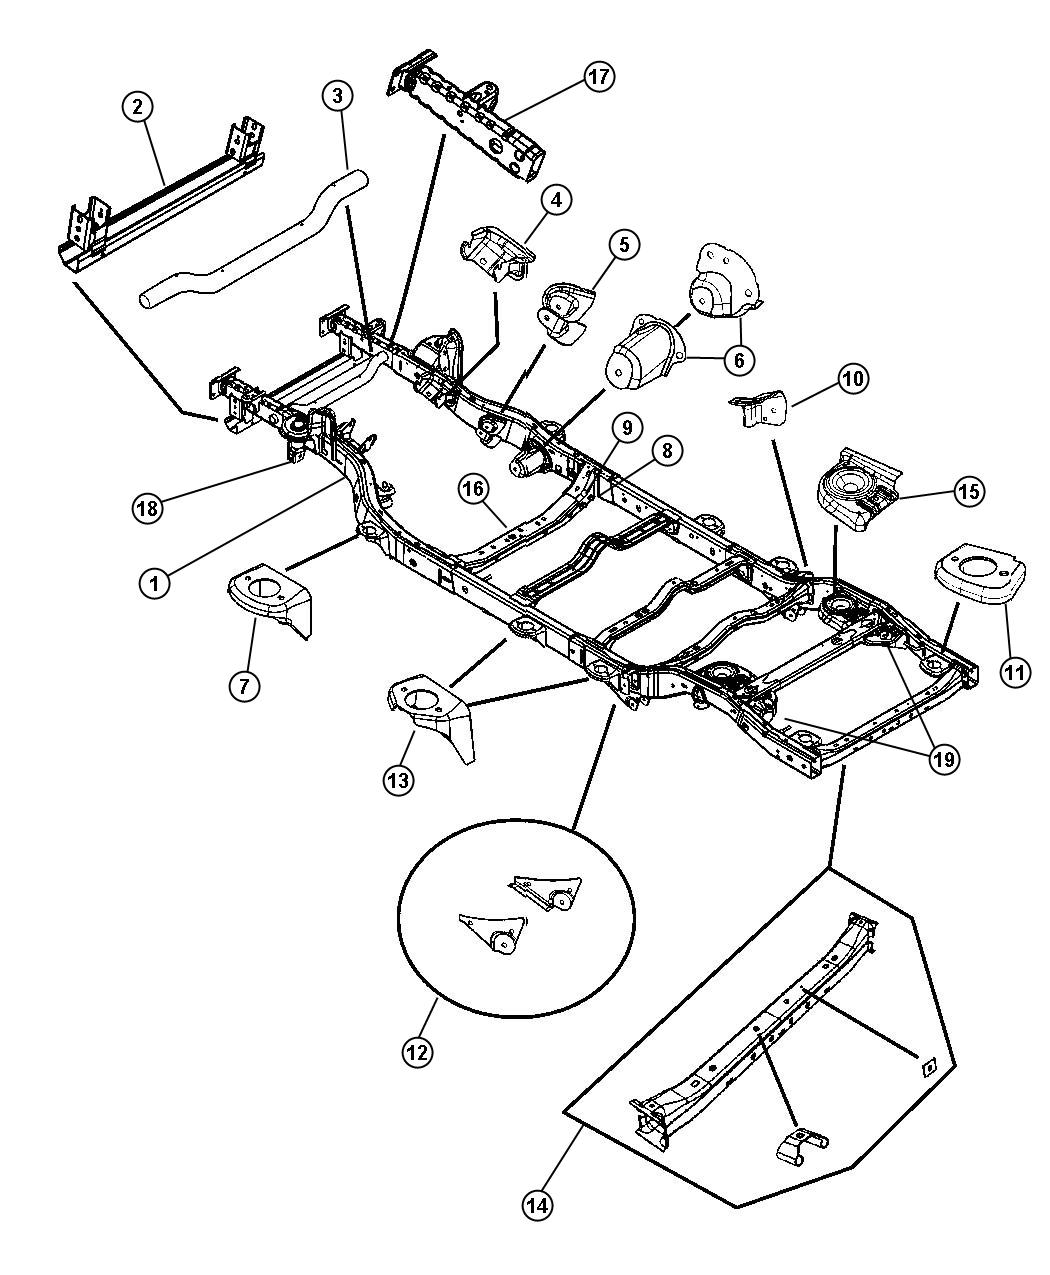 2015 jeep jk wrangler parts diagram